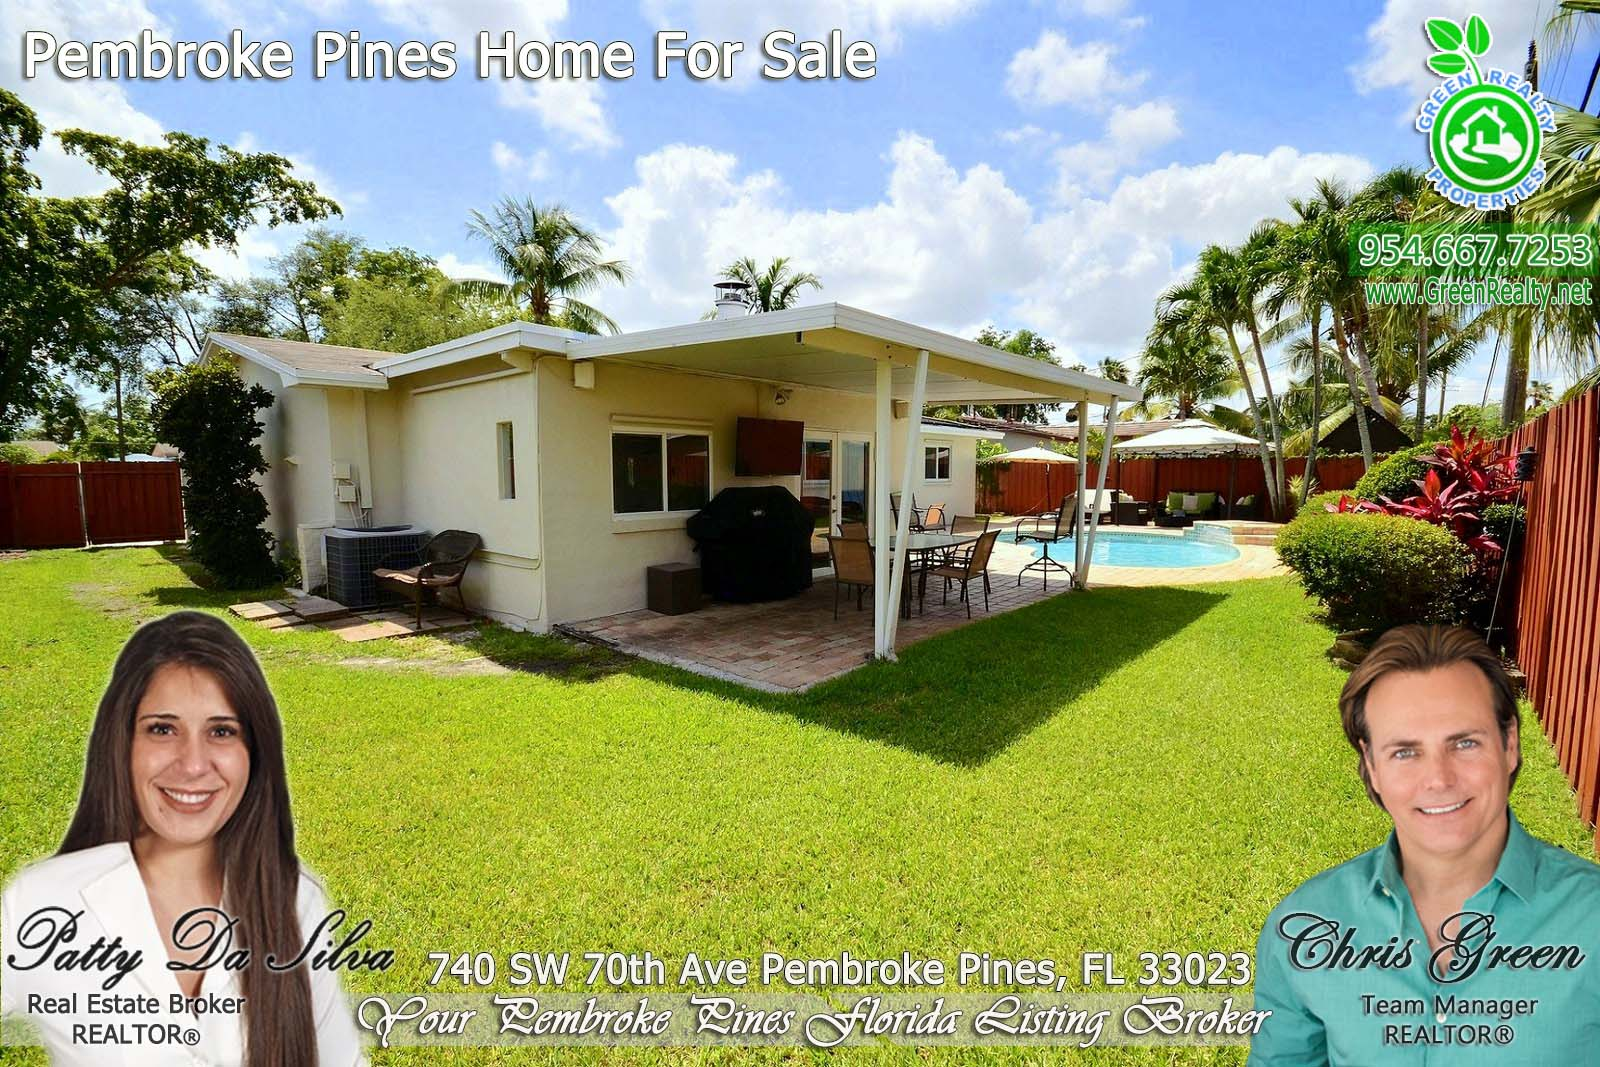 31 Pembroke Pines Real Estate For Sale (4)